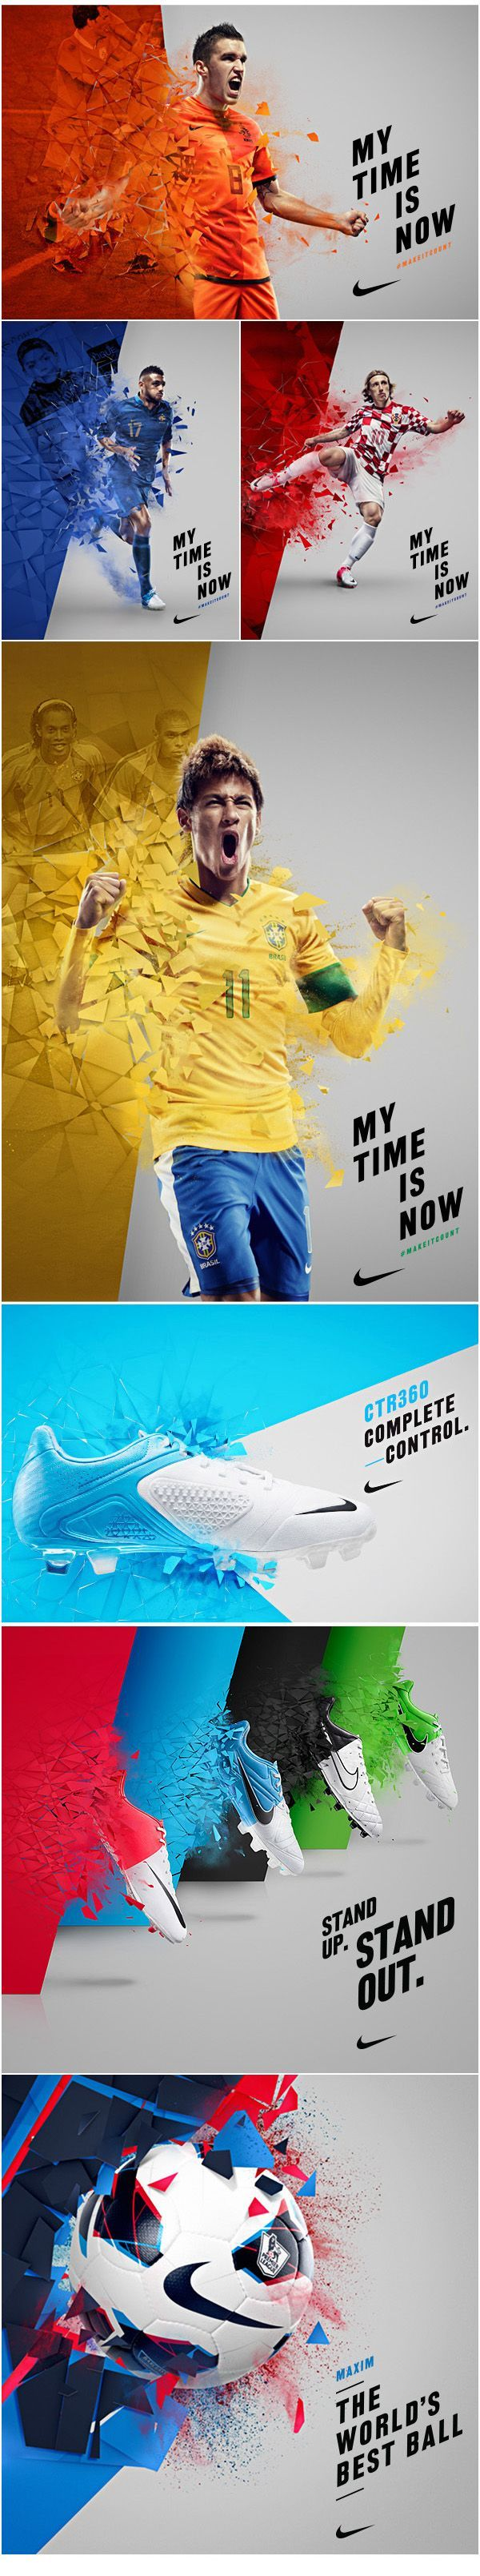 Nike. They know how to get their brand out there. Amazing colors and graphics. No headline needed. Just check mark.